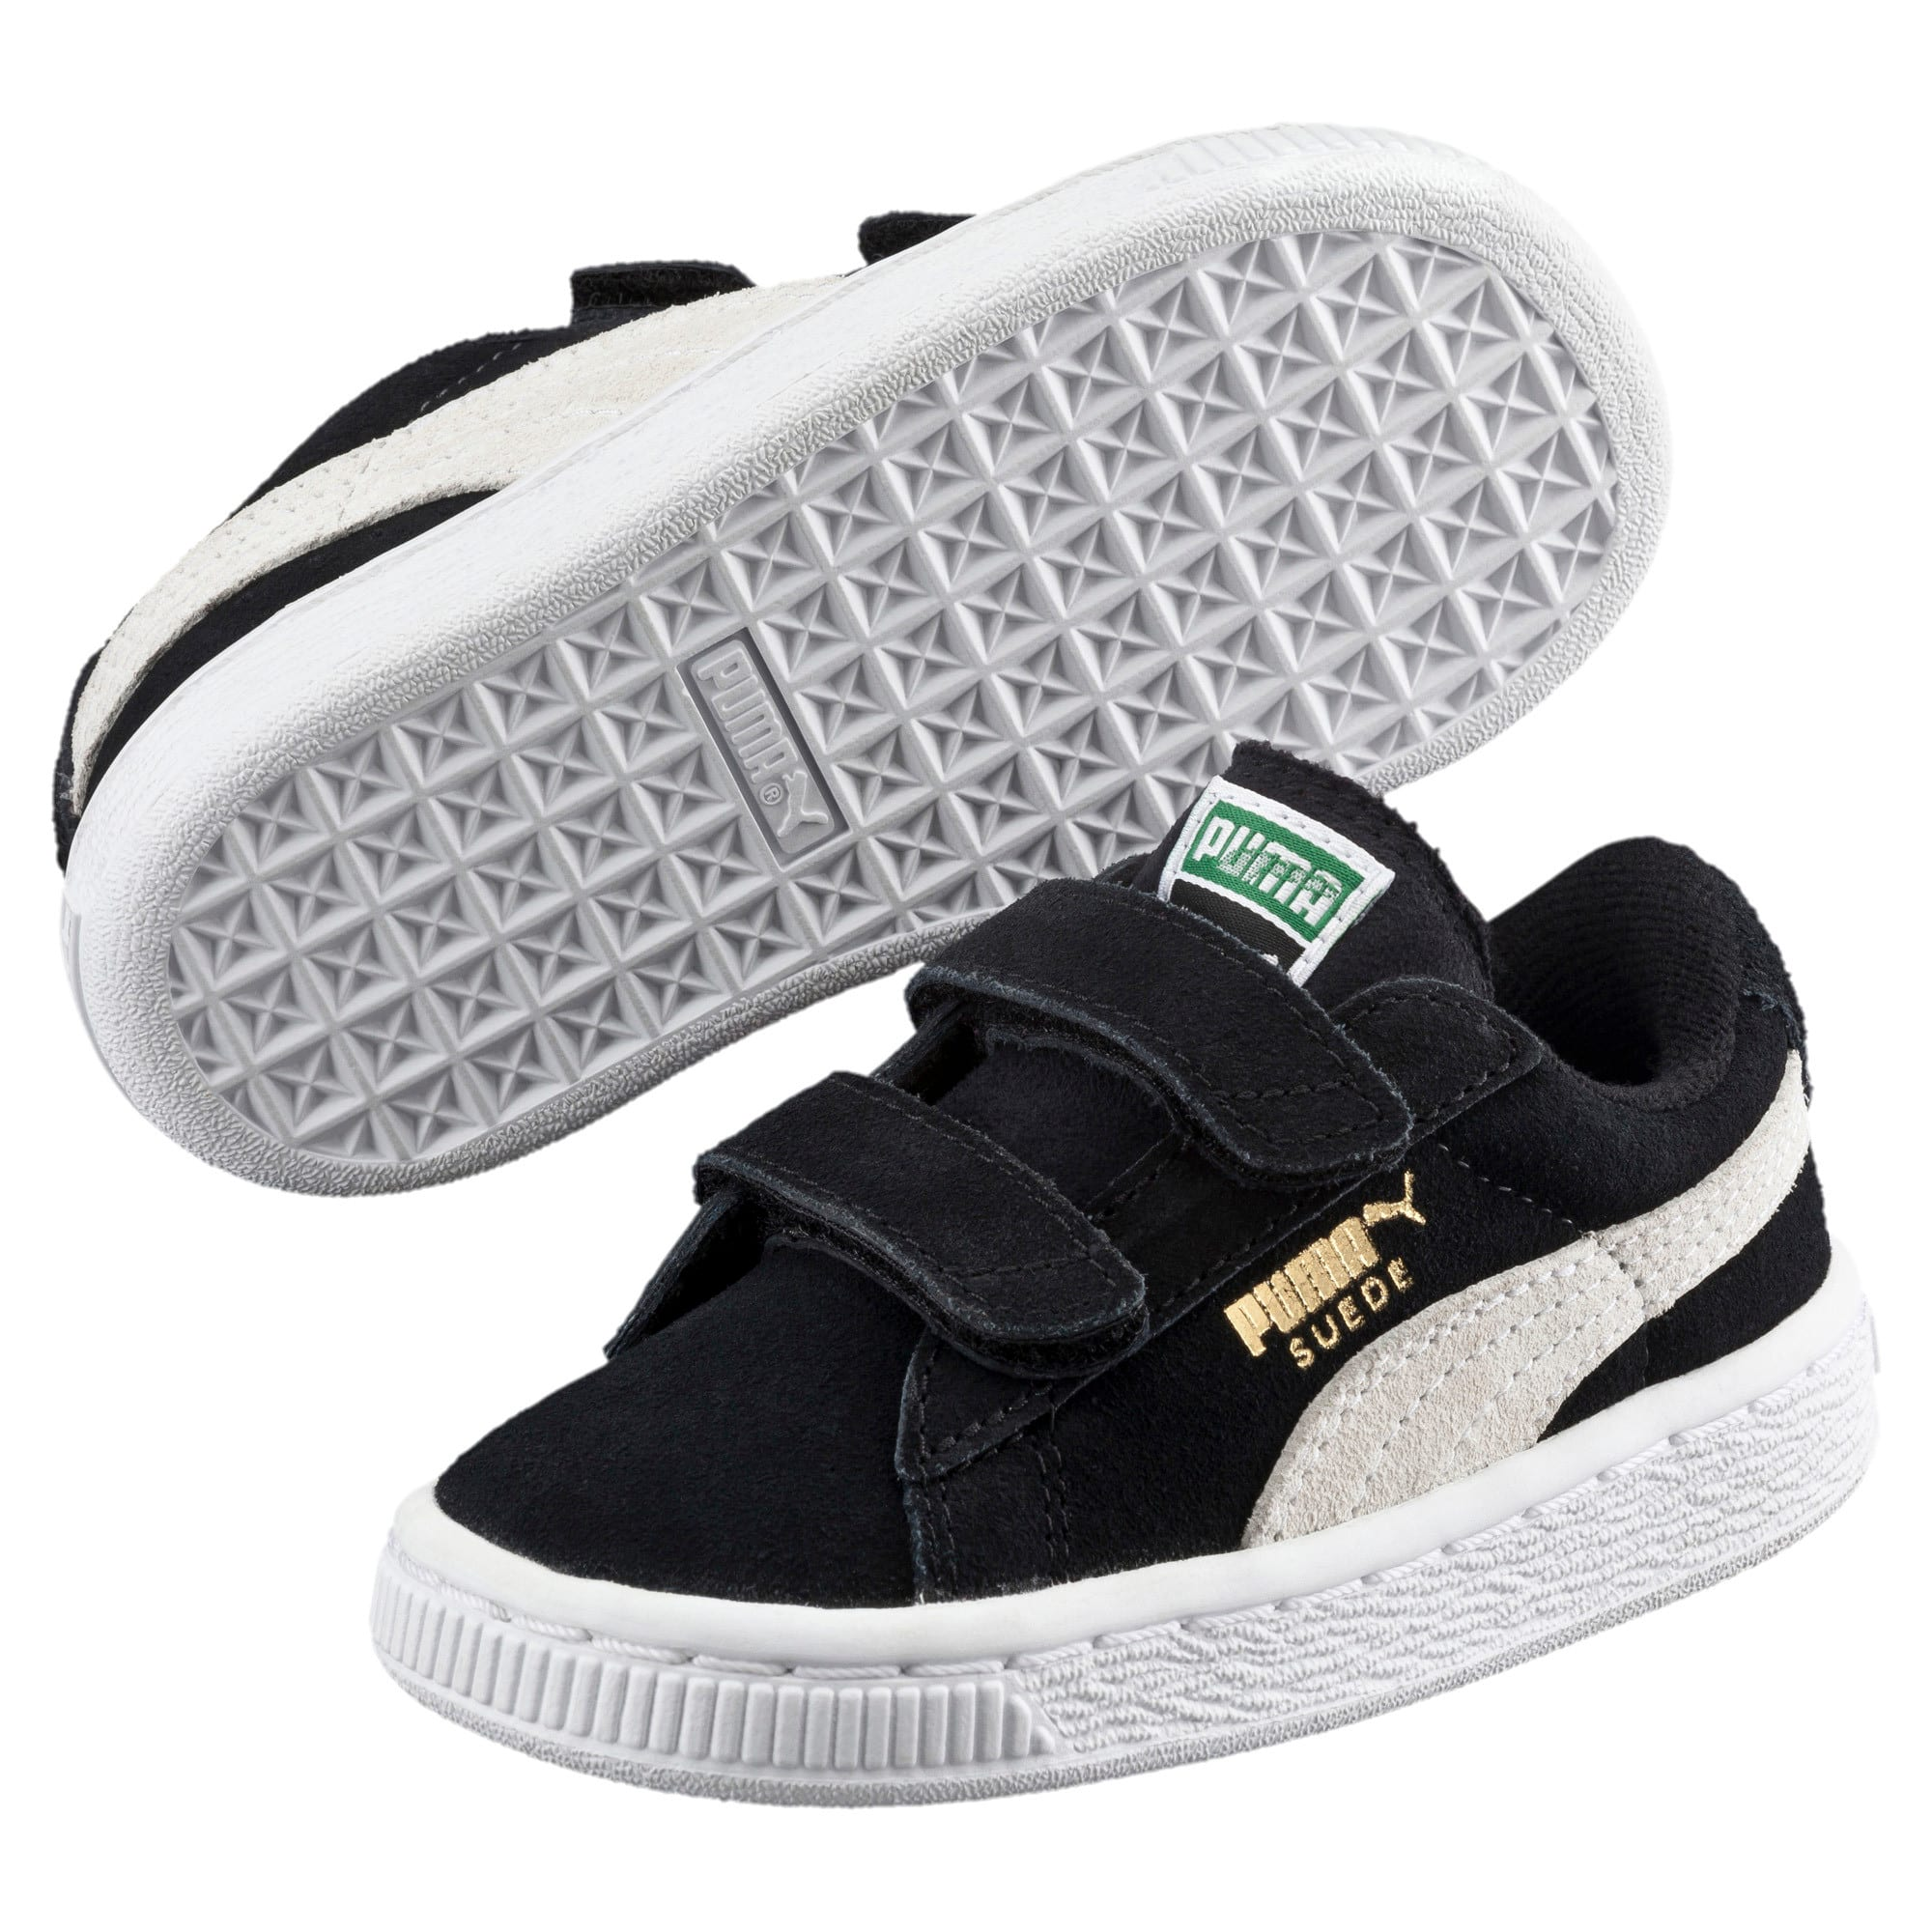 Thumbnail 2 of Suede sneakers voor kinderen, Puma Black-Puma White, medium